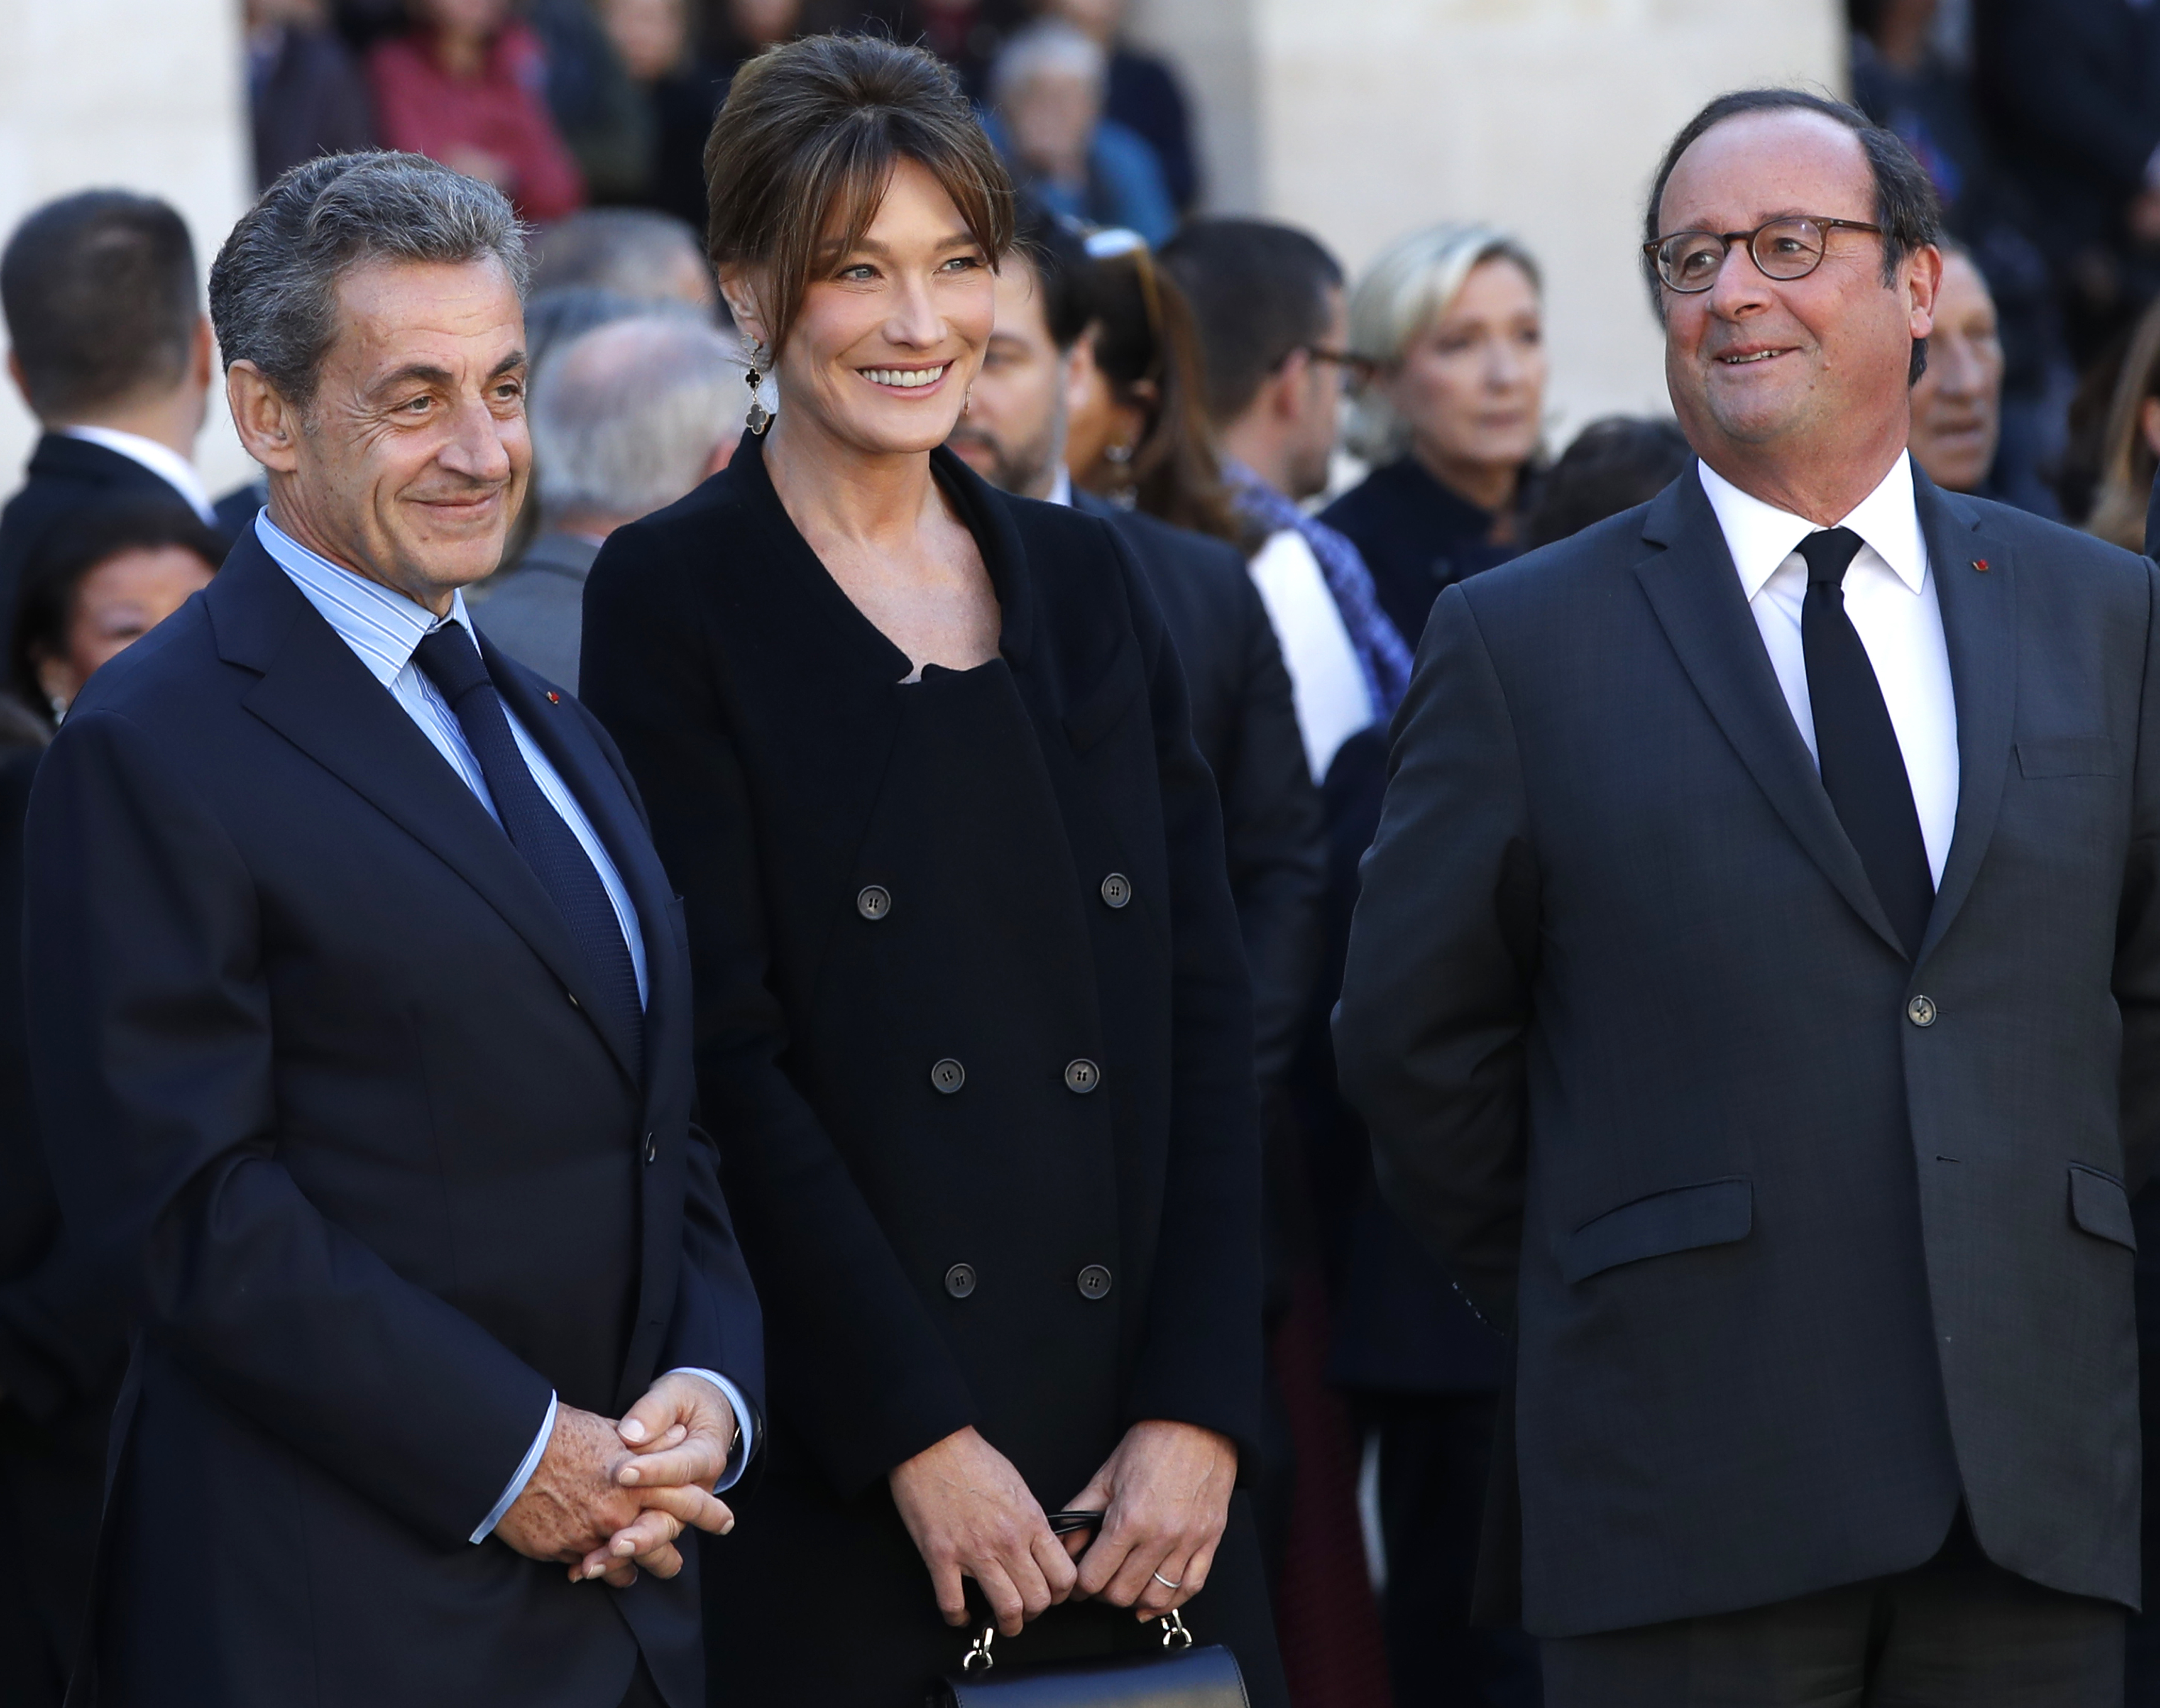 Nicolas Sarkozy, left, his wife Carla Bruni Sarkozy and Francois Hollande